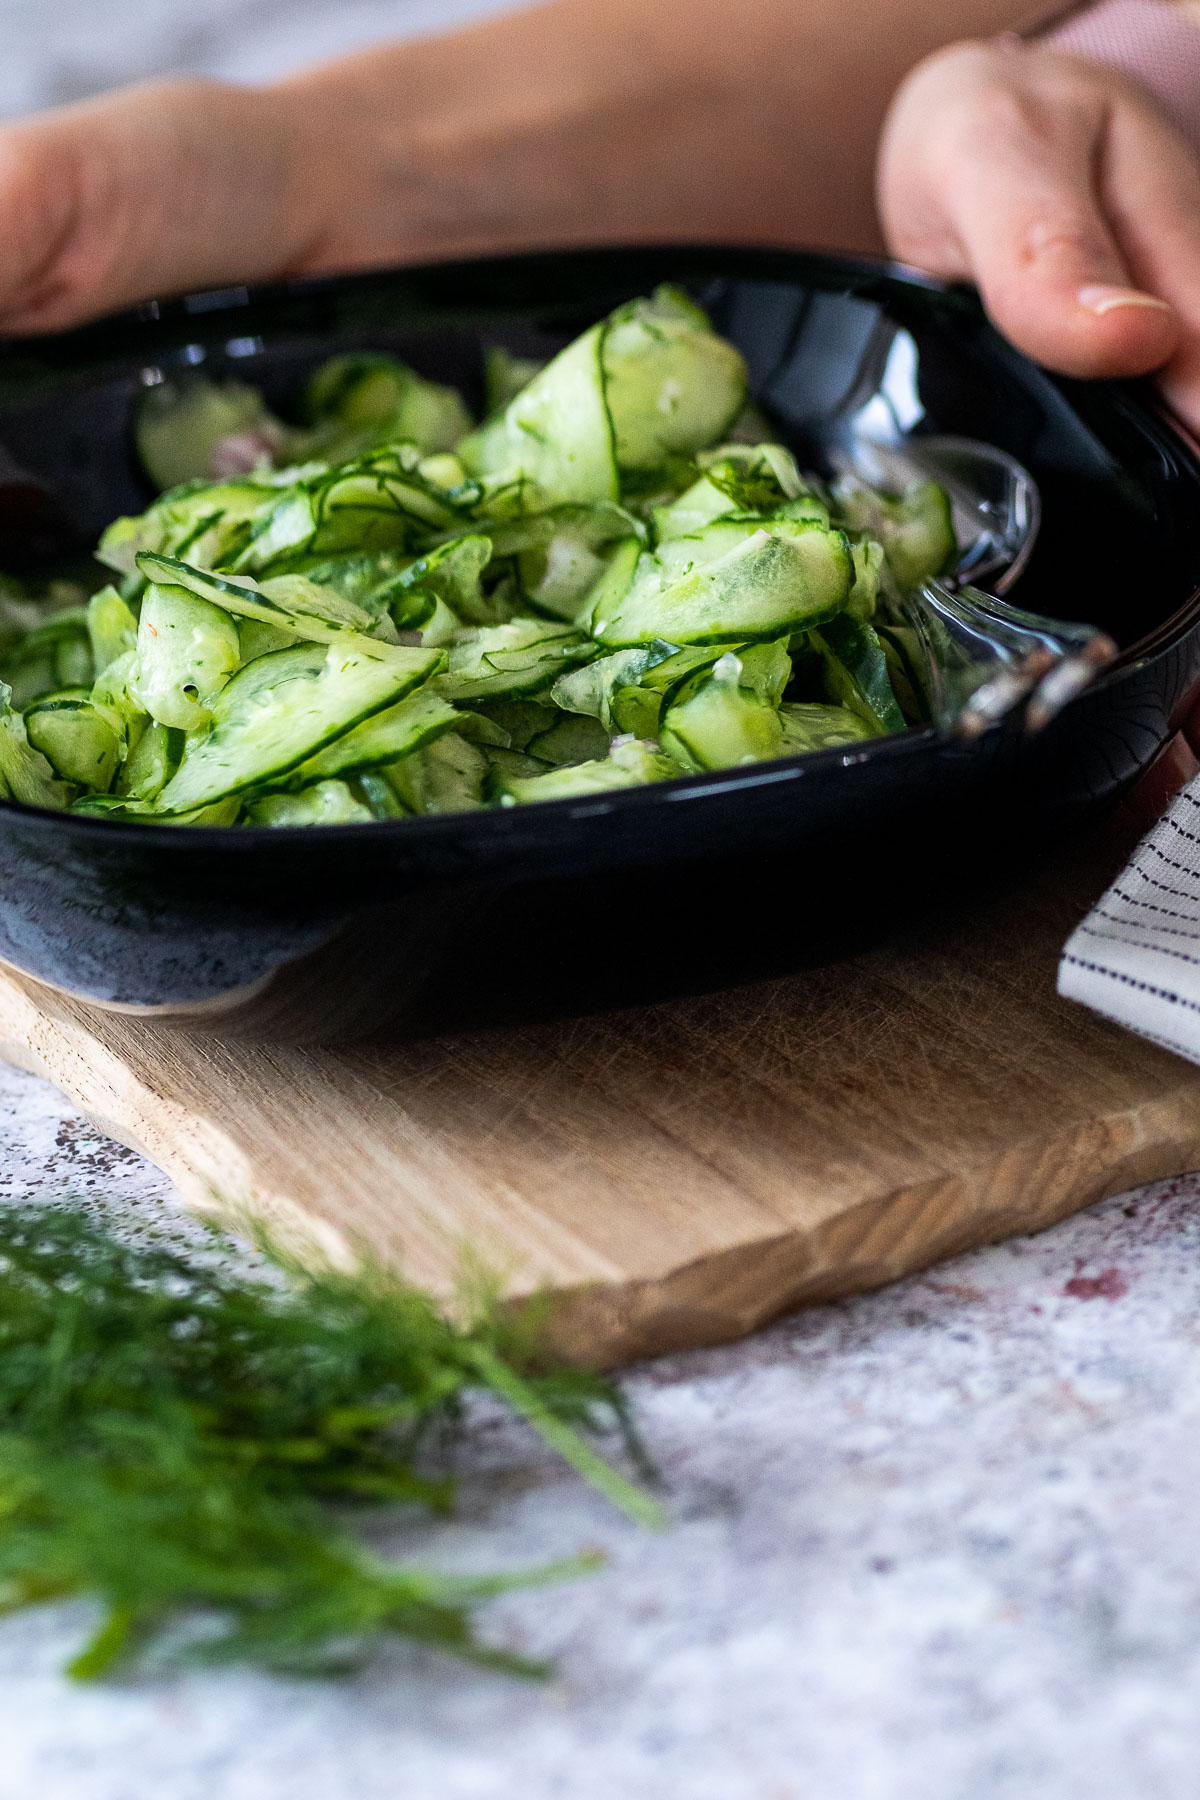 Holding a bowl with cucumber salad with some dill in the front blurred